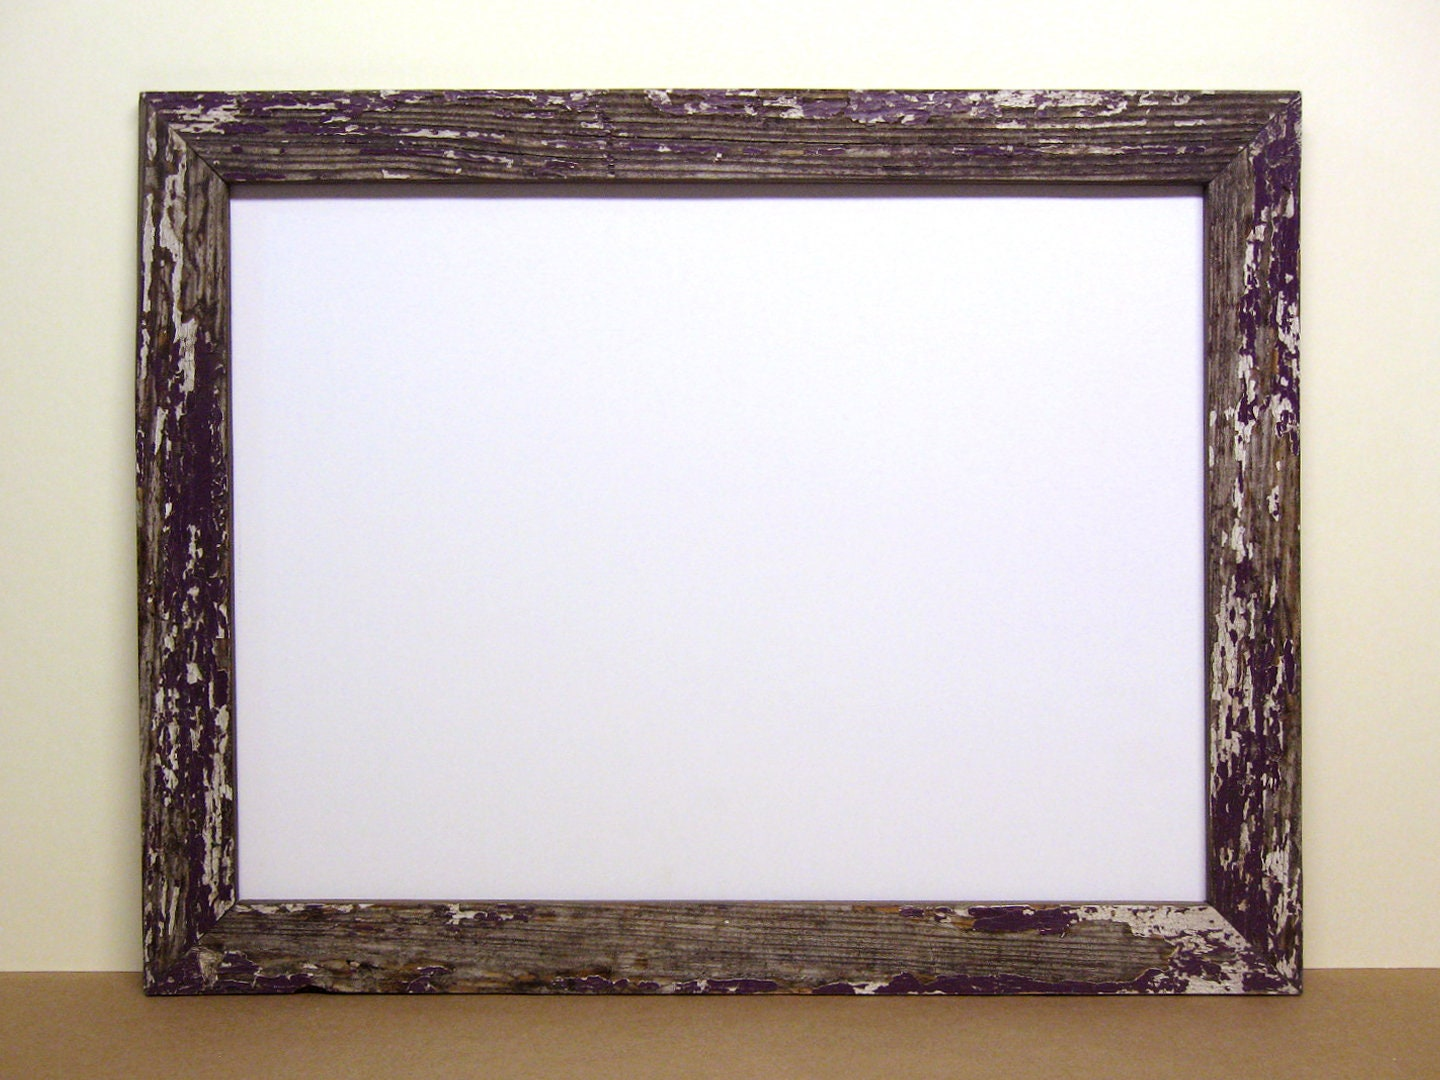 12x16 Frame 12x16 Reclaimed Wood Frame 12x16 Picture Frame